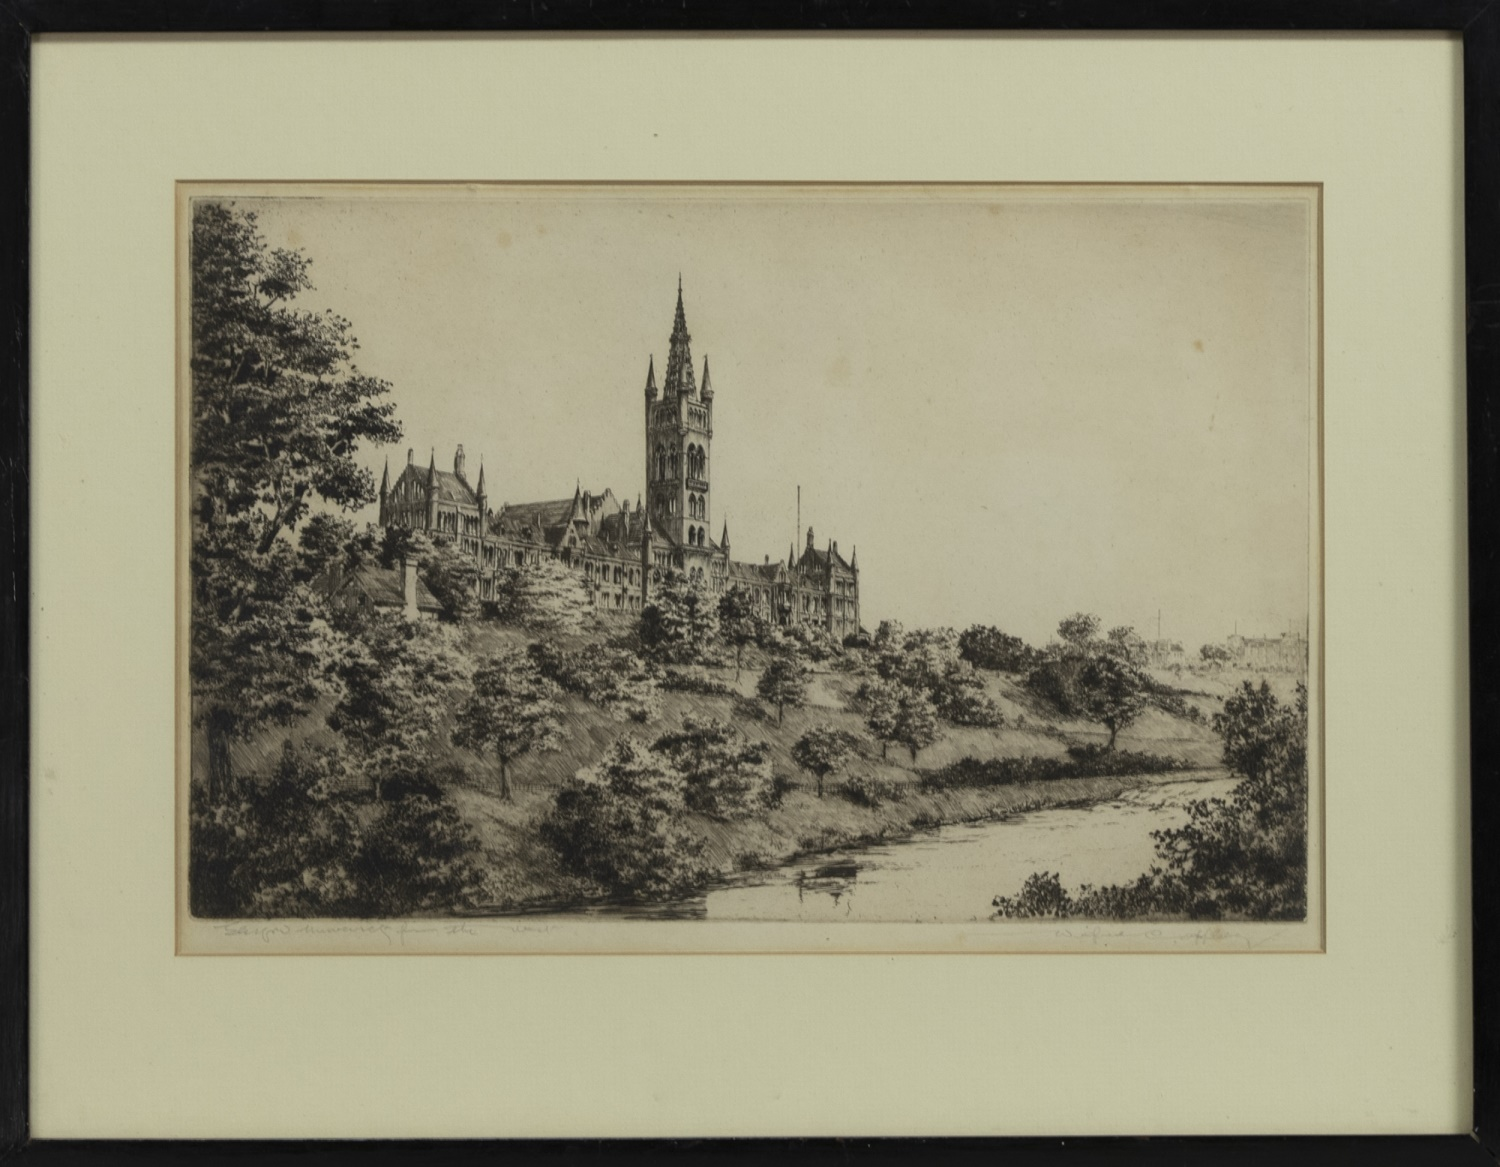 GLASGOW UNIVERSITY FROM THE WEST, AN ETCHING BY WILFRED APPLEBY